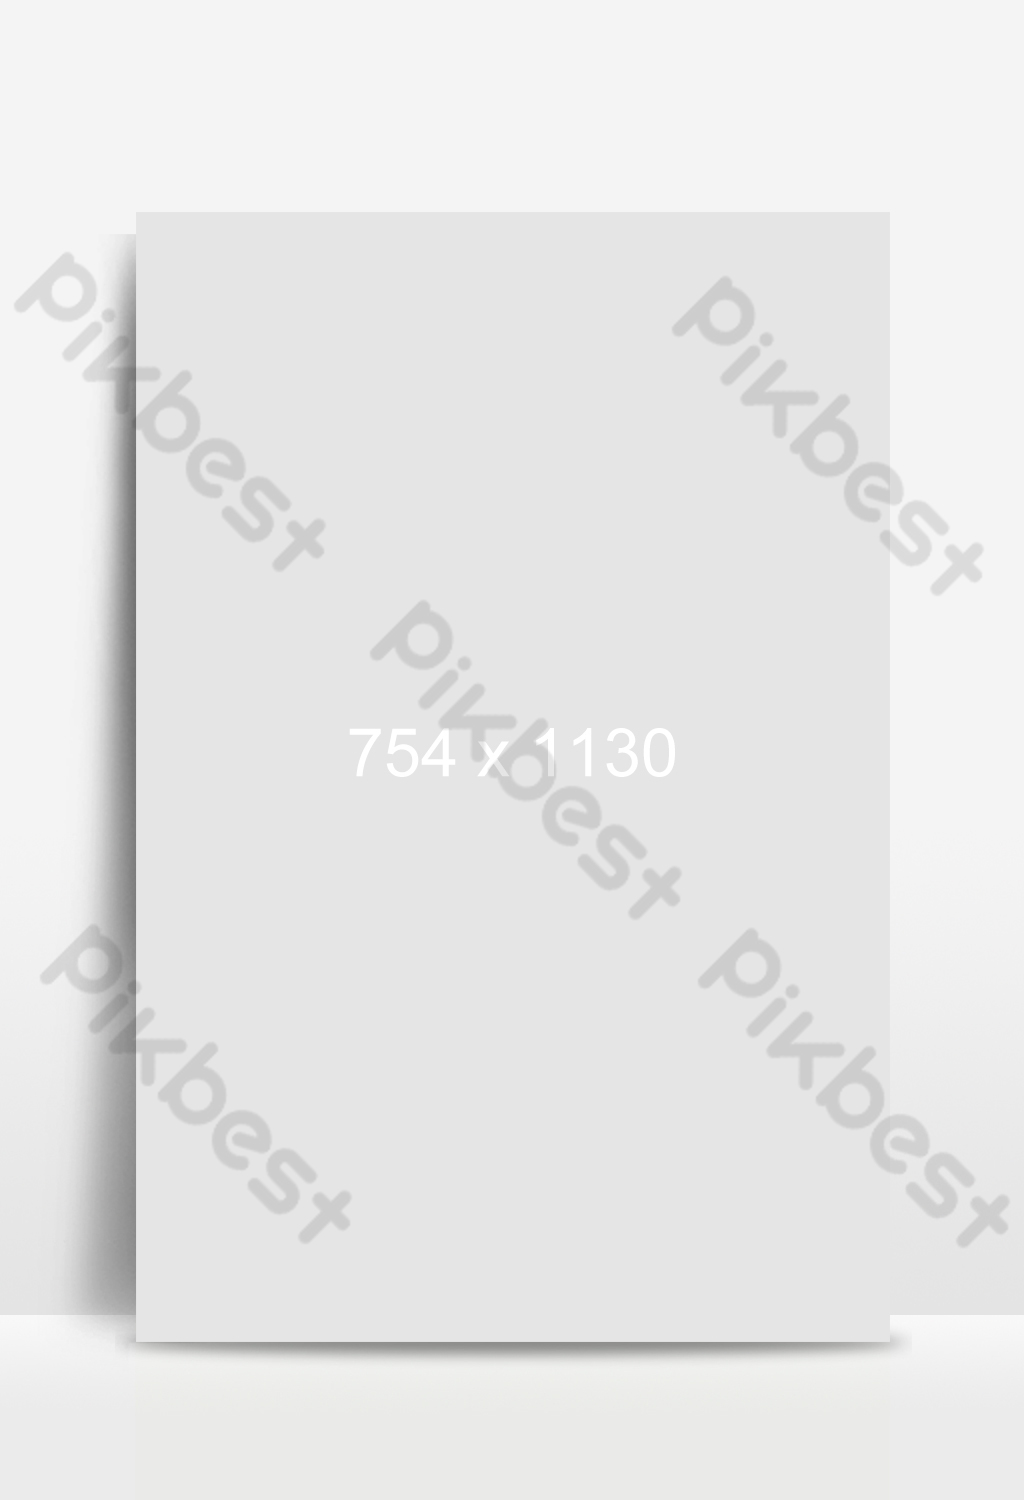 Color Creative Plant Wedding Invitation Background Backgrounds Psd Free Download Pikbest